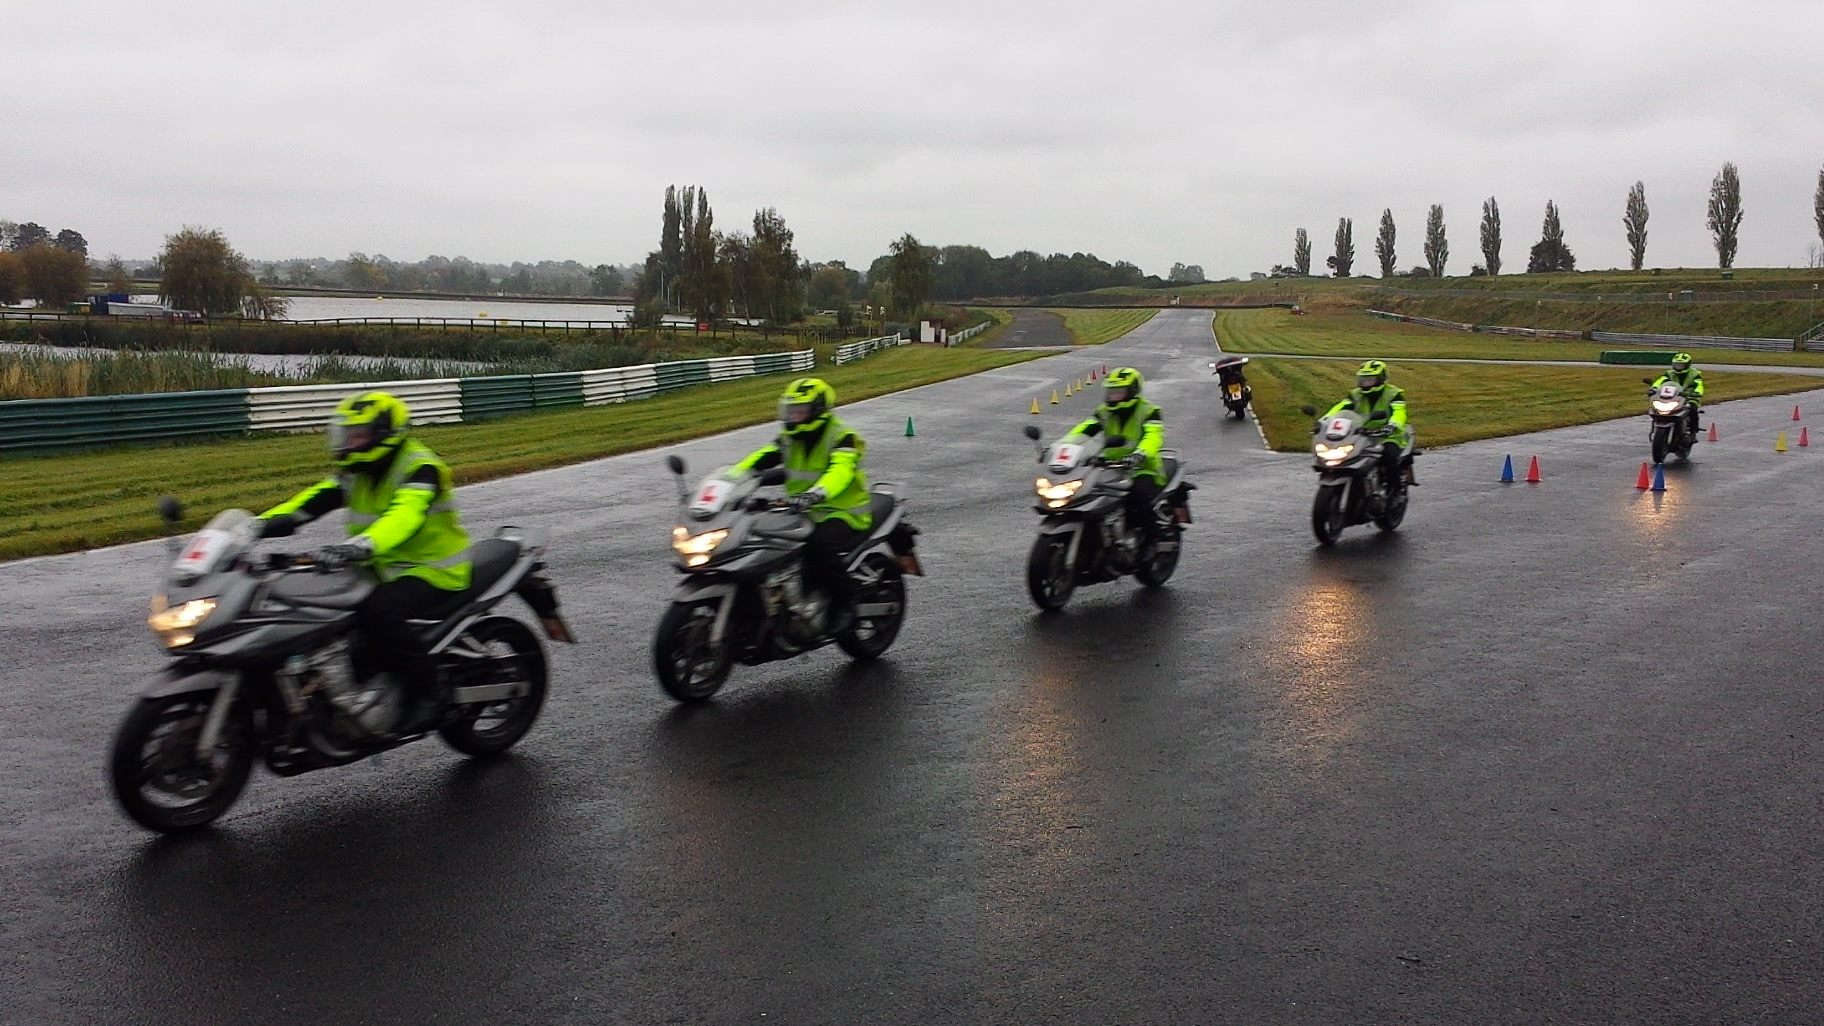 Motorcycle test in London, Coventry, Milton Keynes Leicester Desford Kirkby Mallory Melton Mowbray Grantham